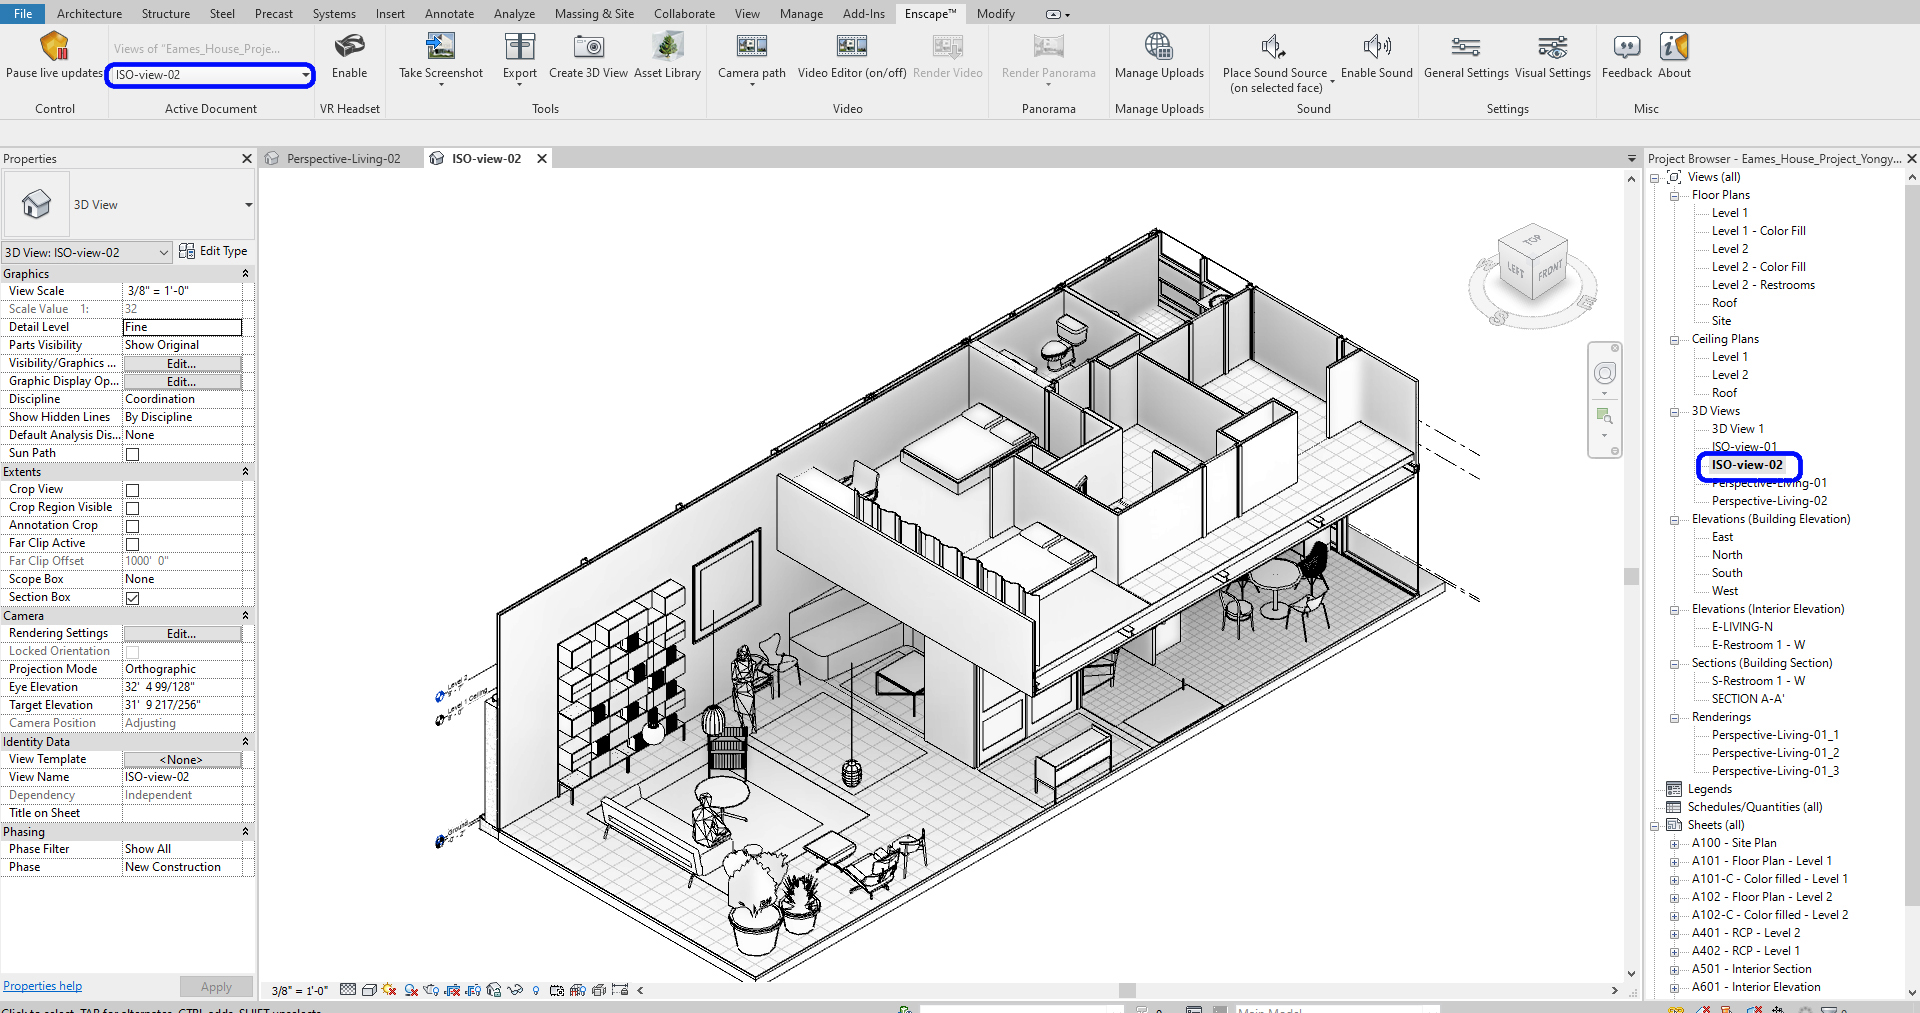 It presents the ISO-view in Revit.